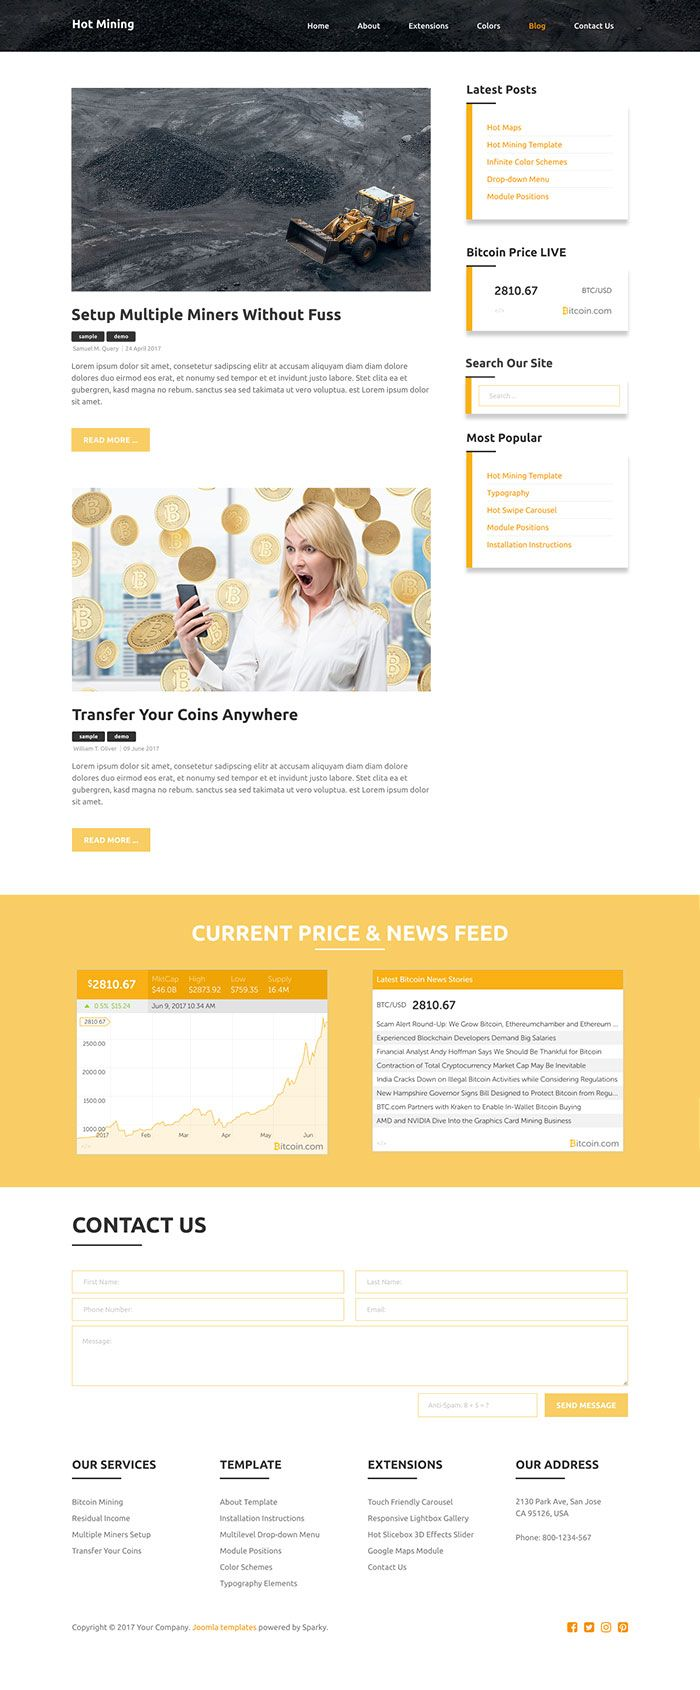 Hot Mining - Joomla Template Screenshot 6